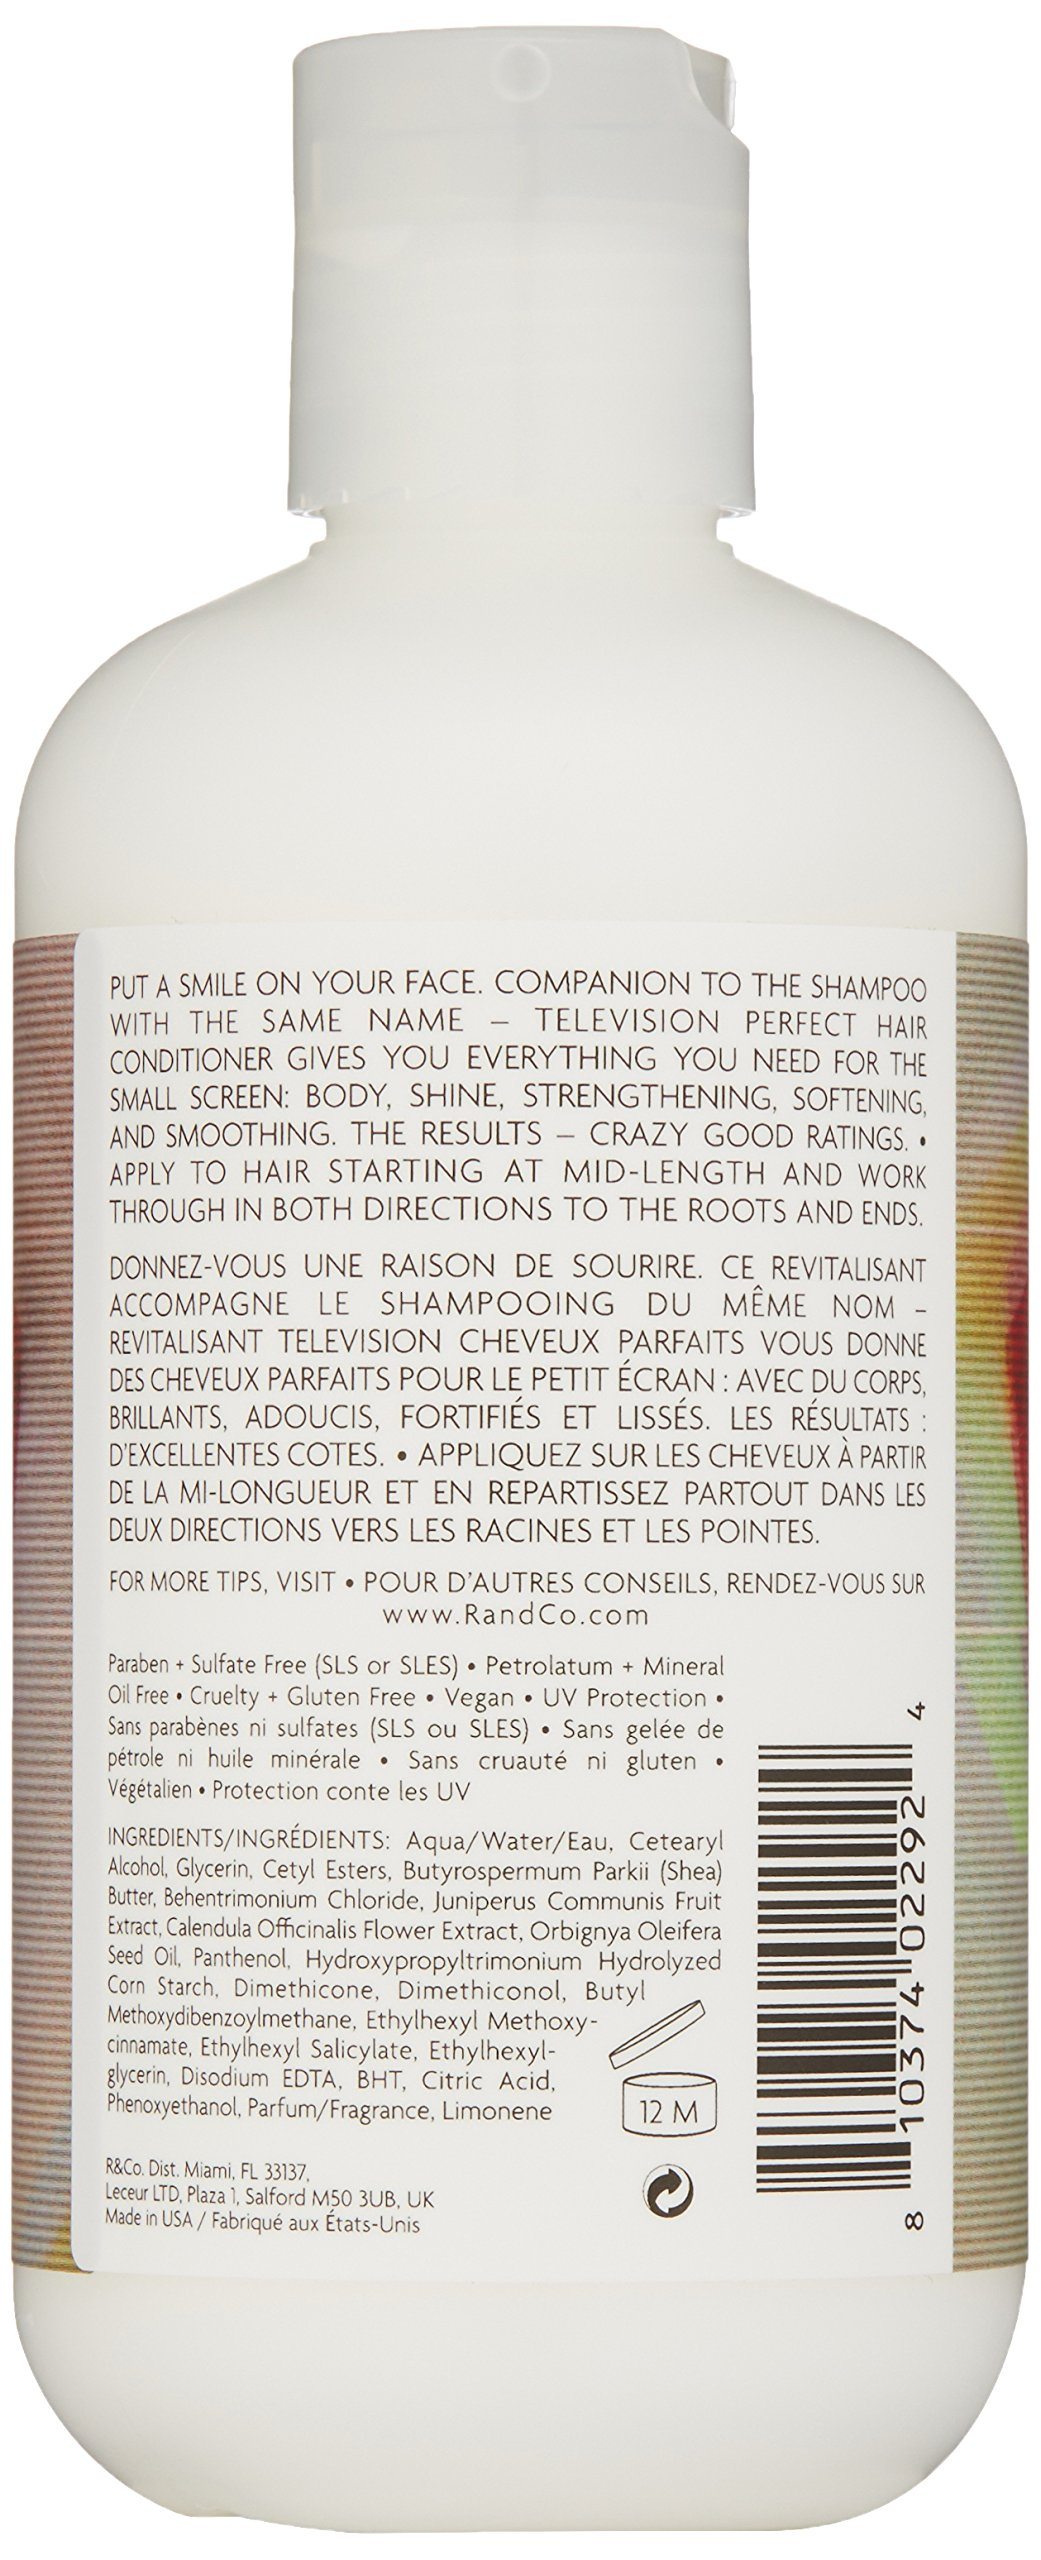 R+Co Television Perfect Hair Conditioner, 8 fl. oz. by R+Co (Image #2)